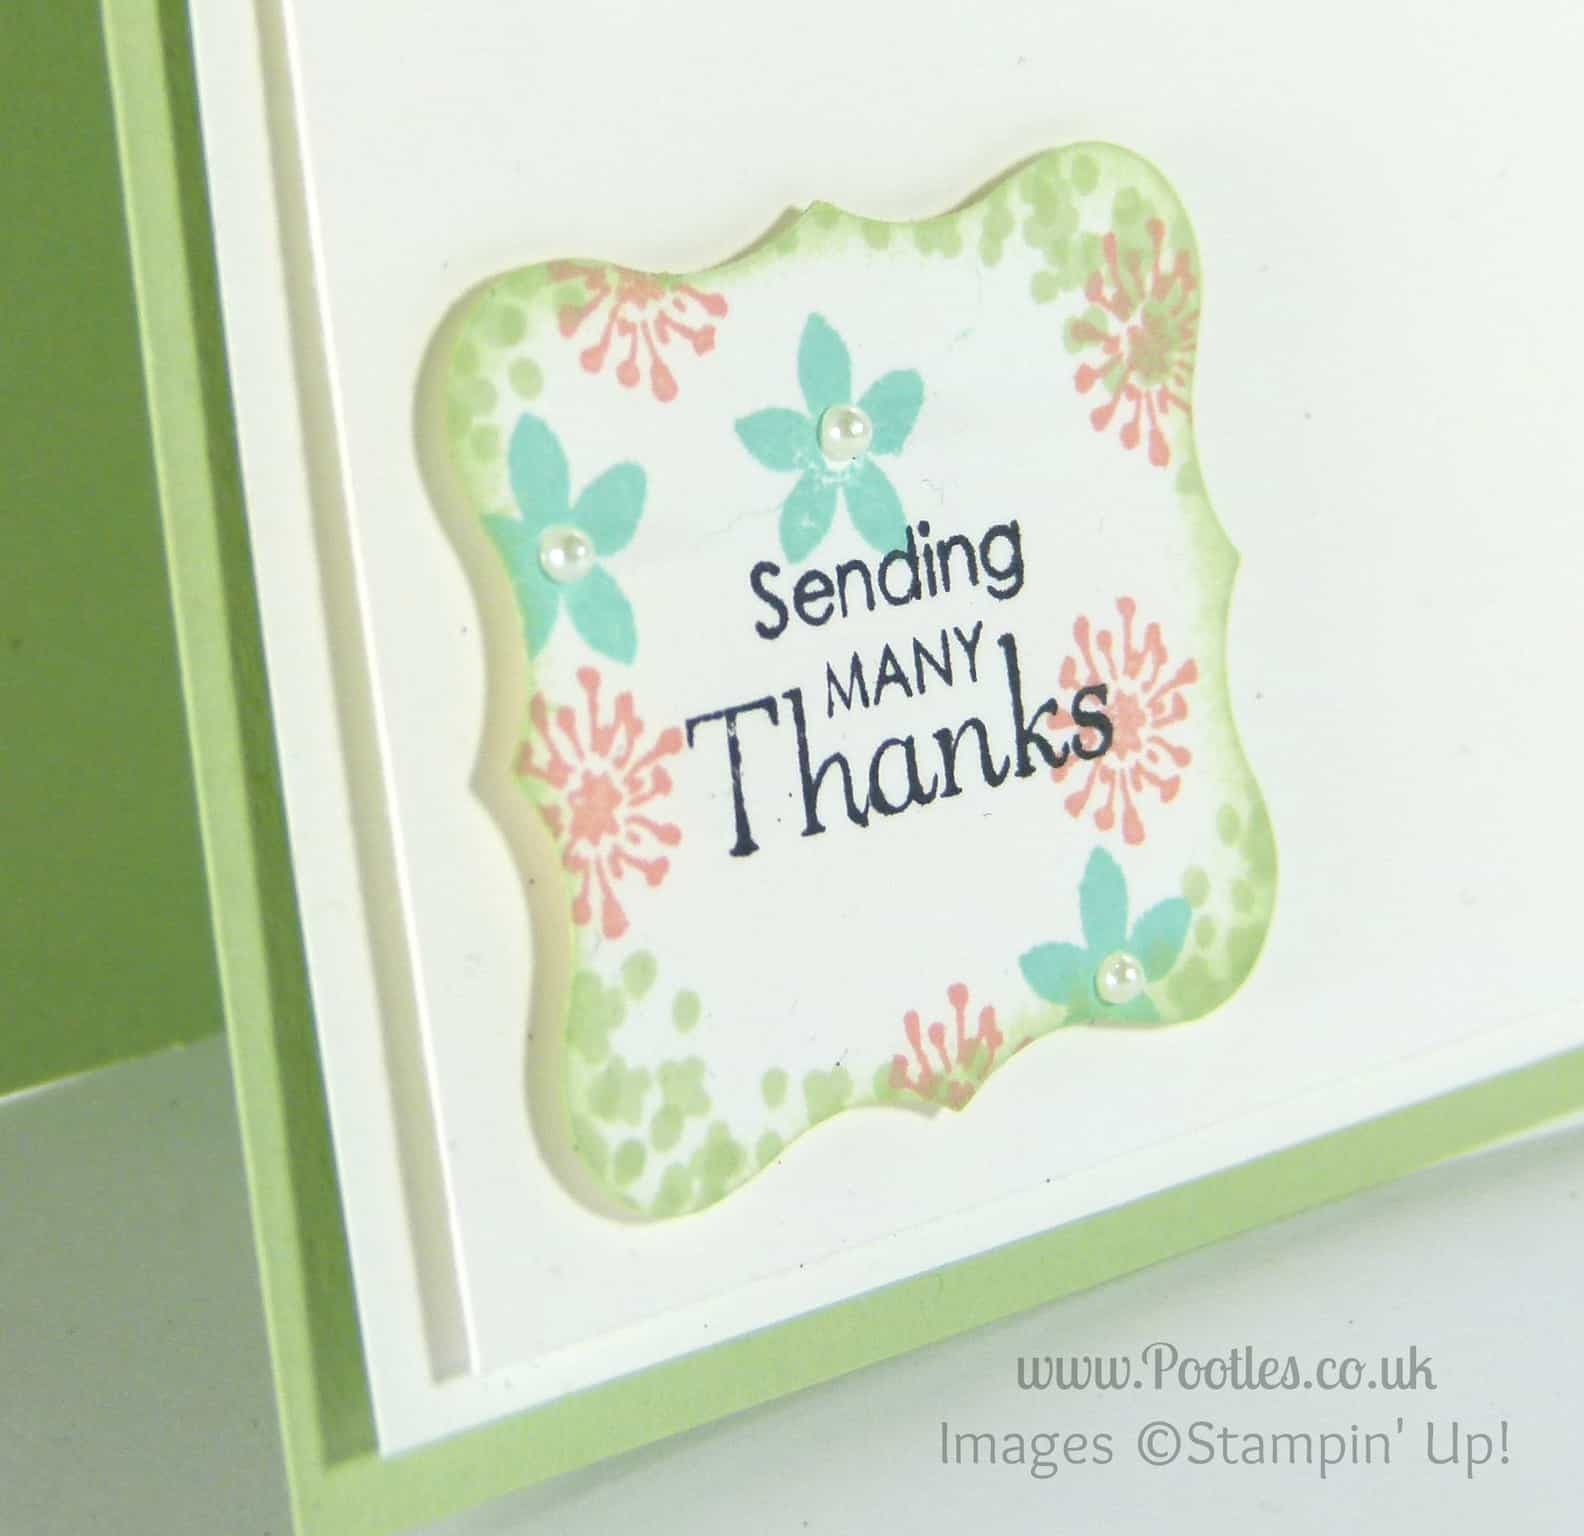 Background Stamped Punch Outs using ©Stampin' Up! Summer Sillhouettes